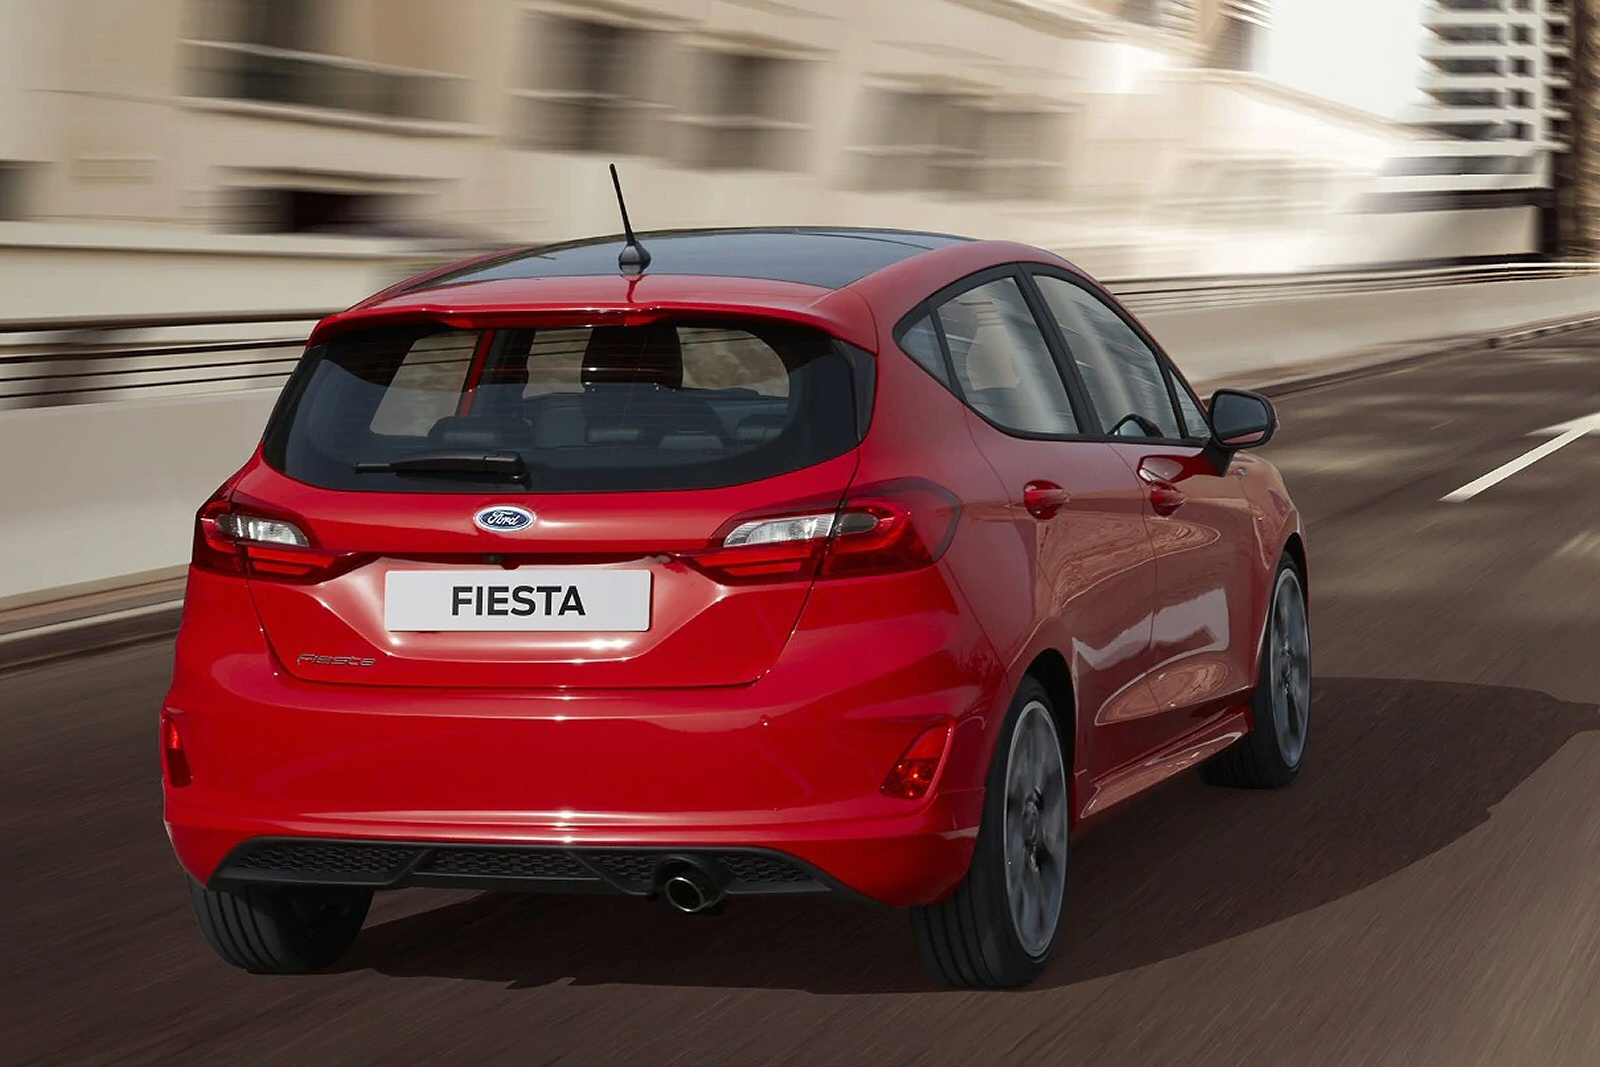 Ford Fiesta Review 2020